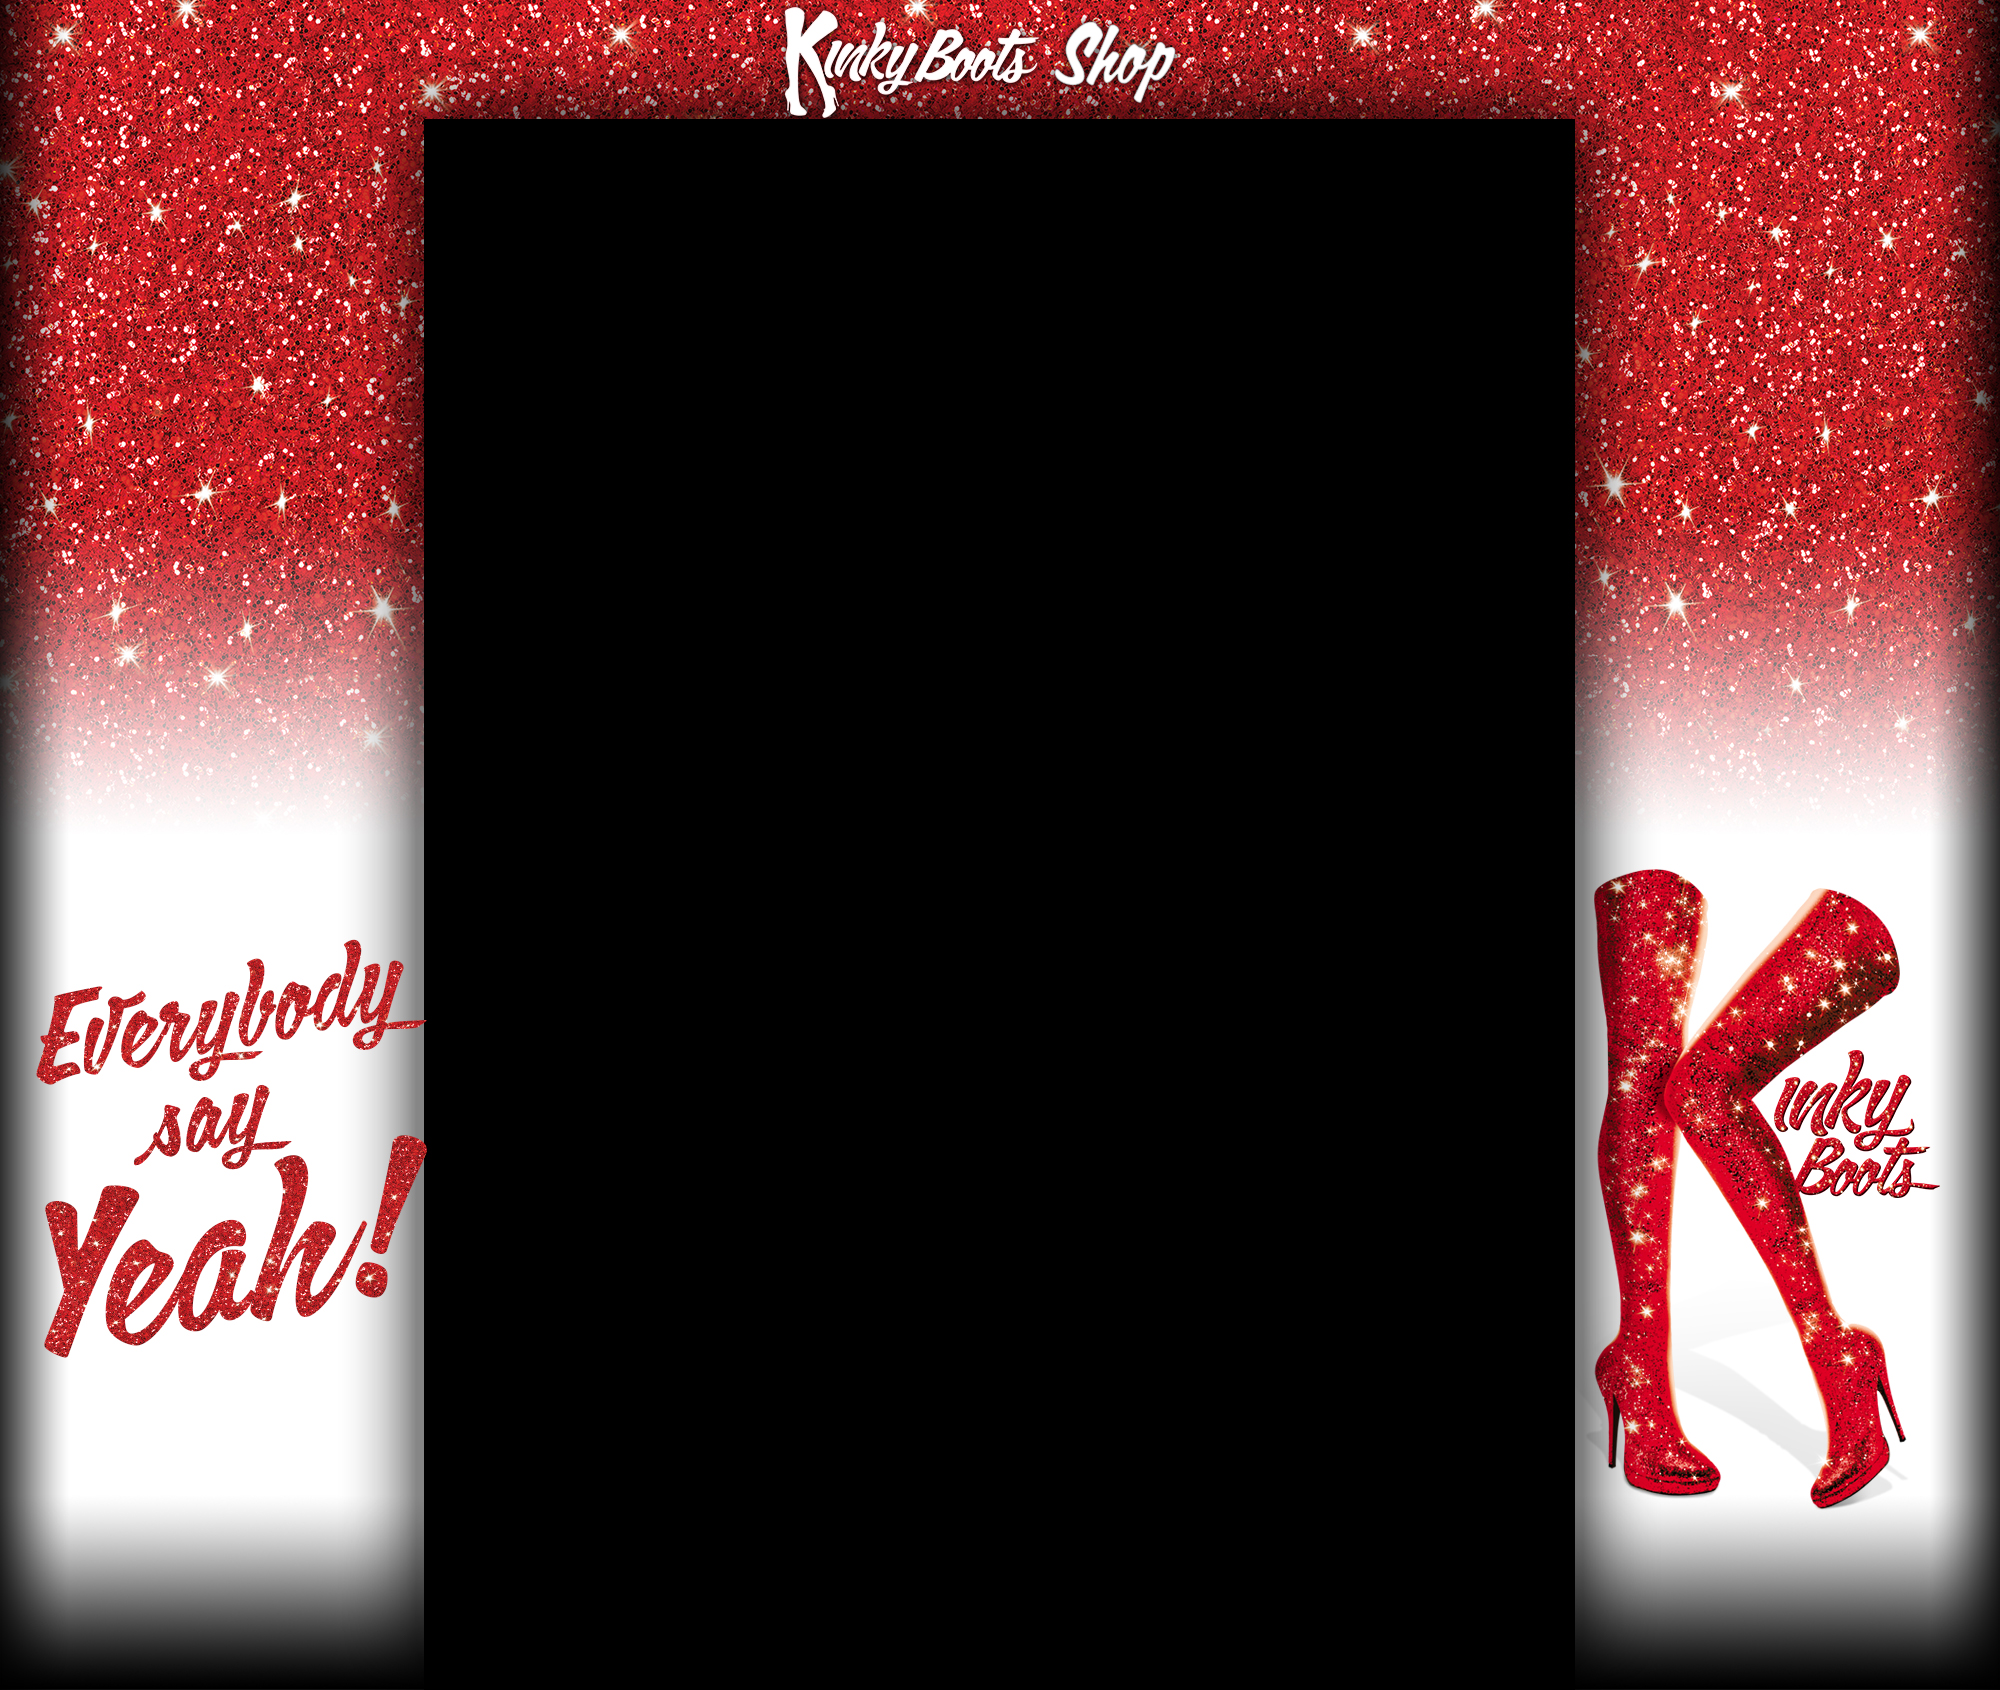 kinkyboots-background2.jpg